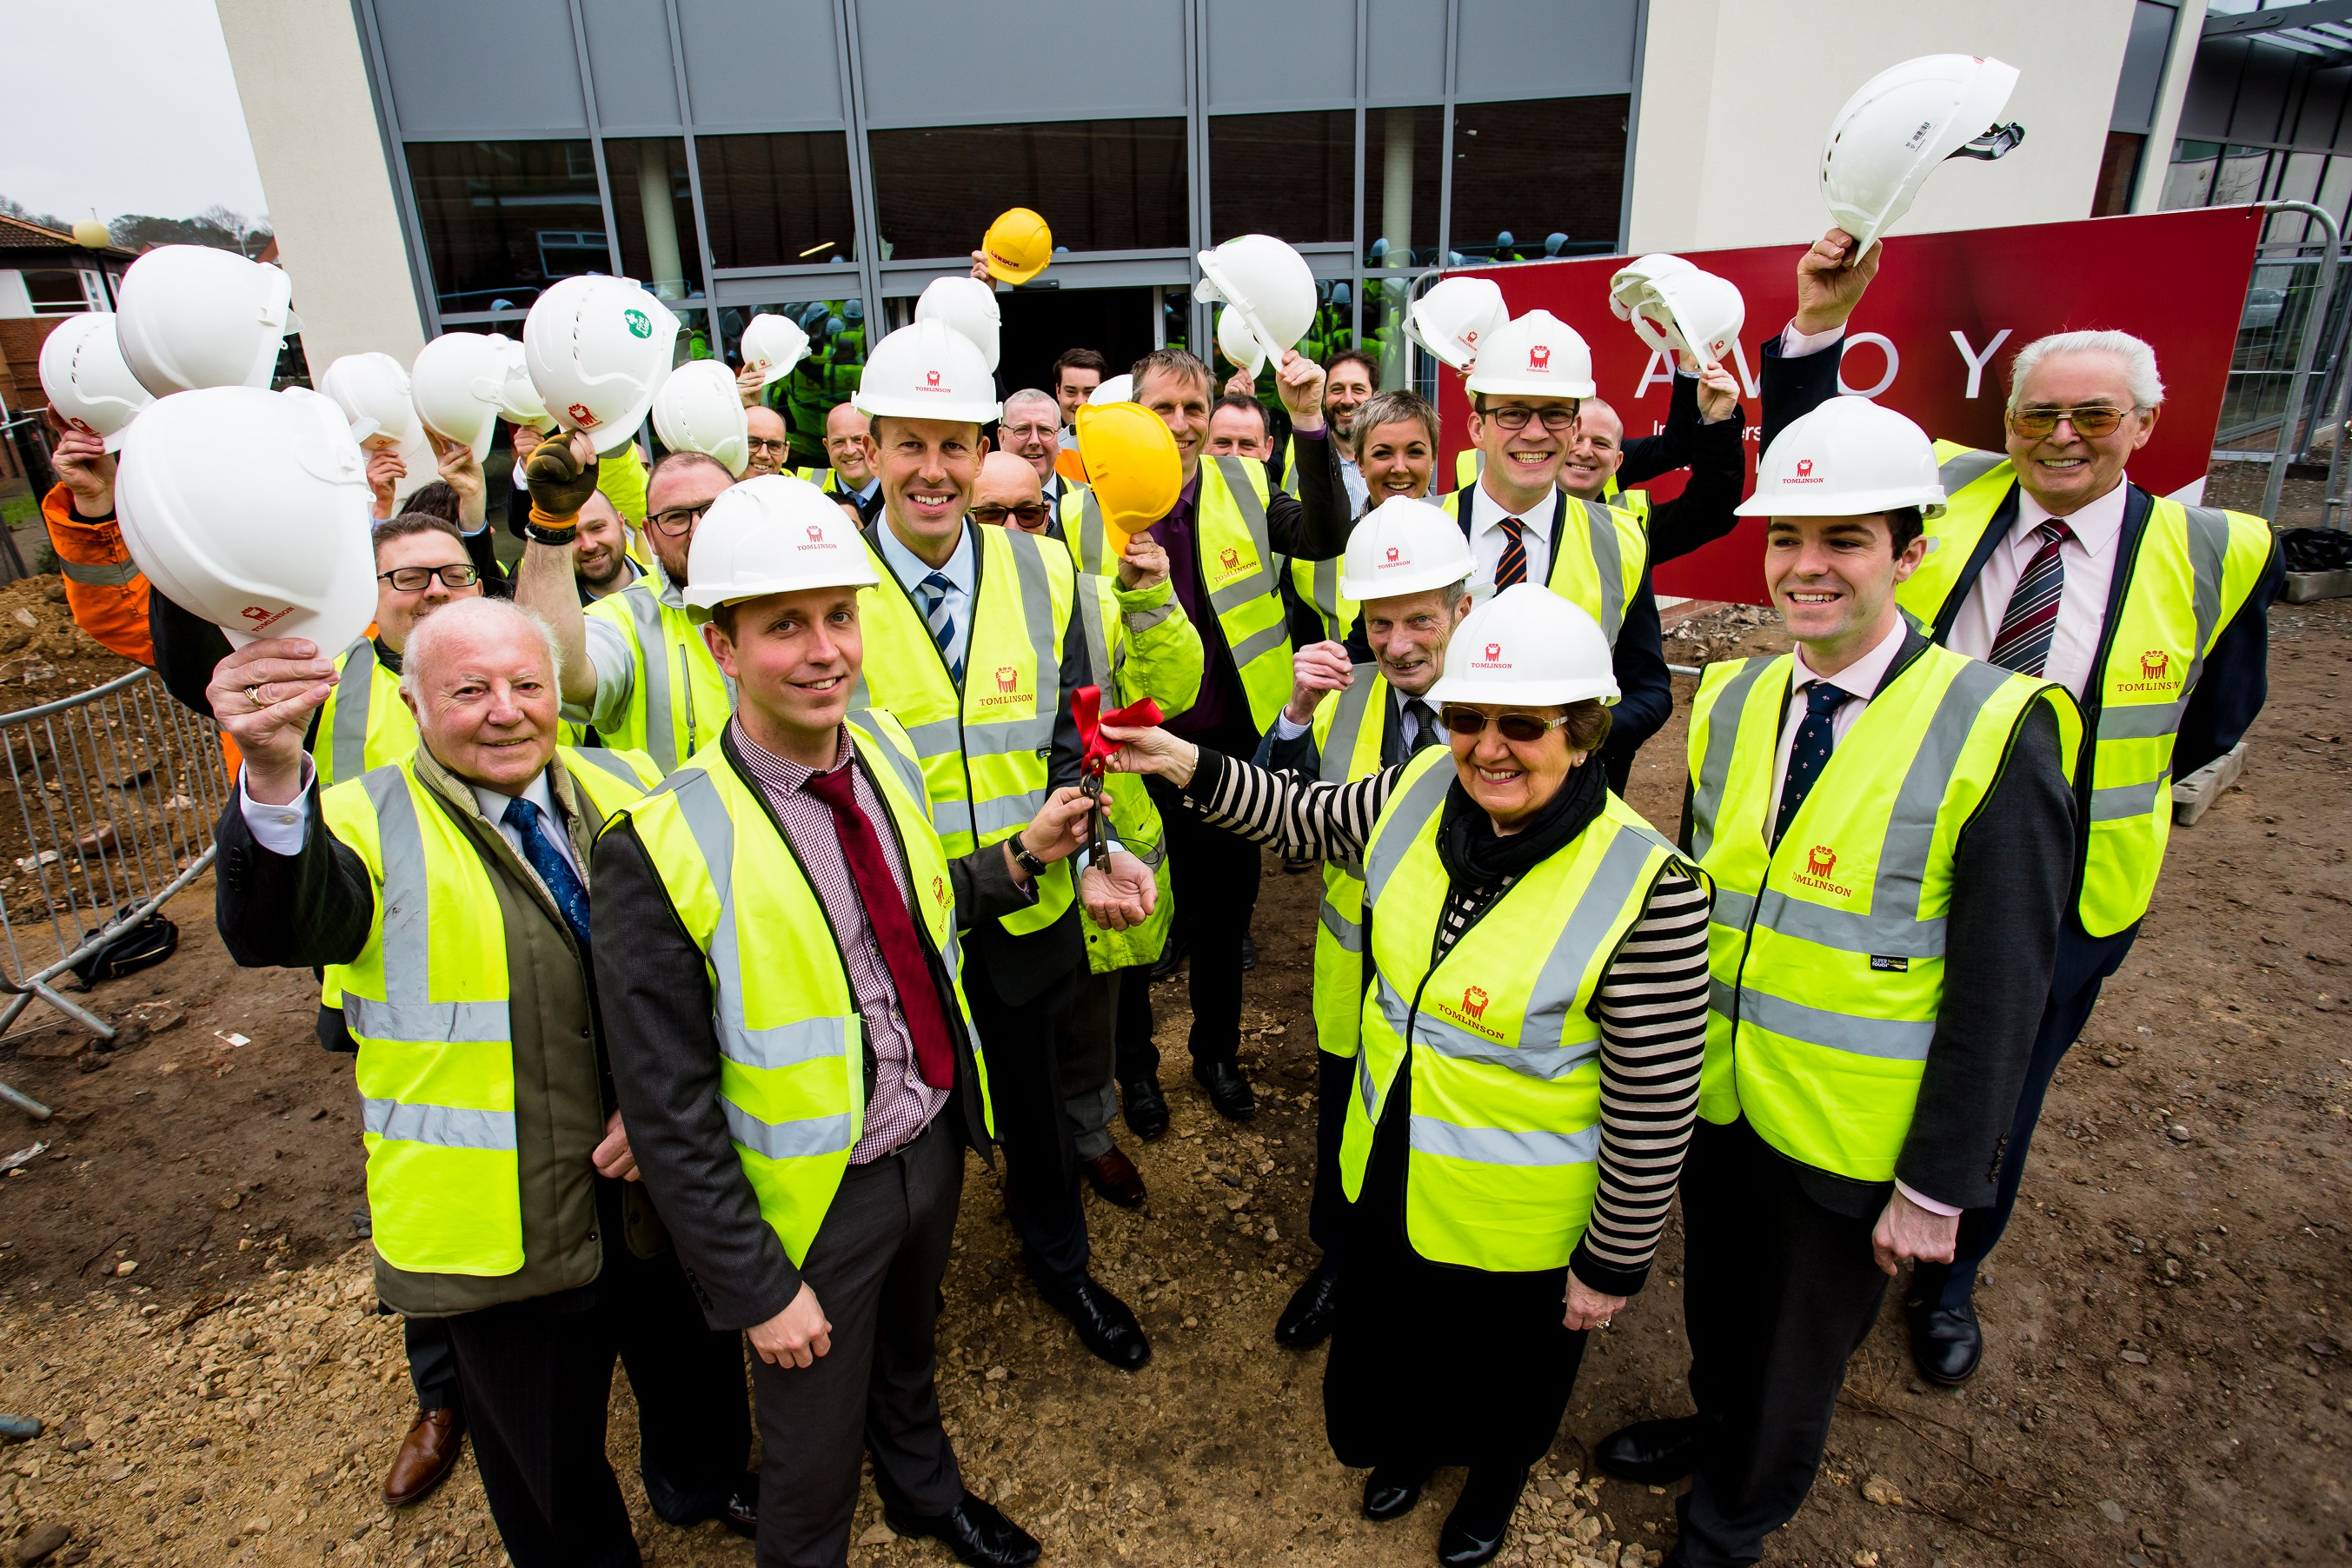 Another celebratory milestone for Grantham's town centre regeneration